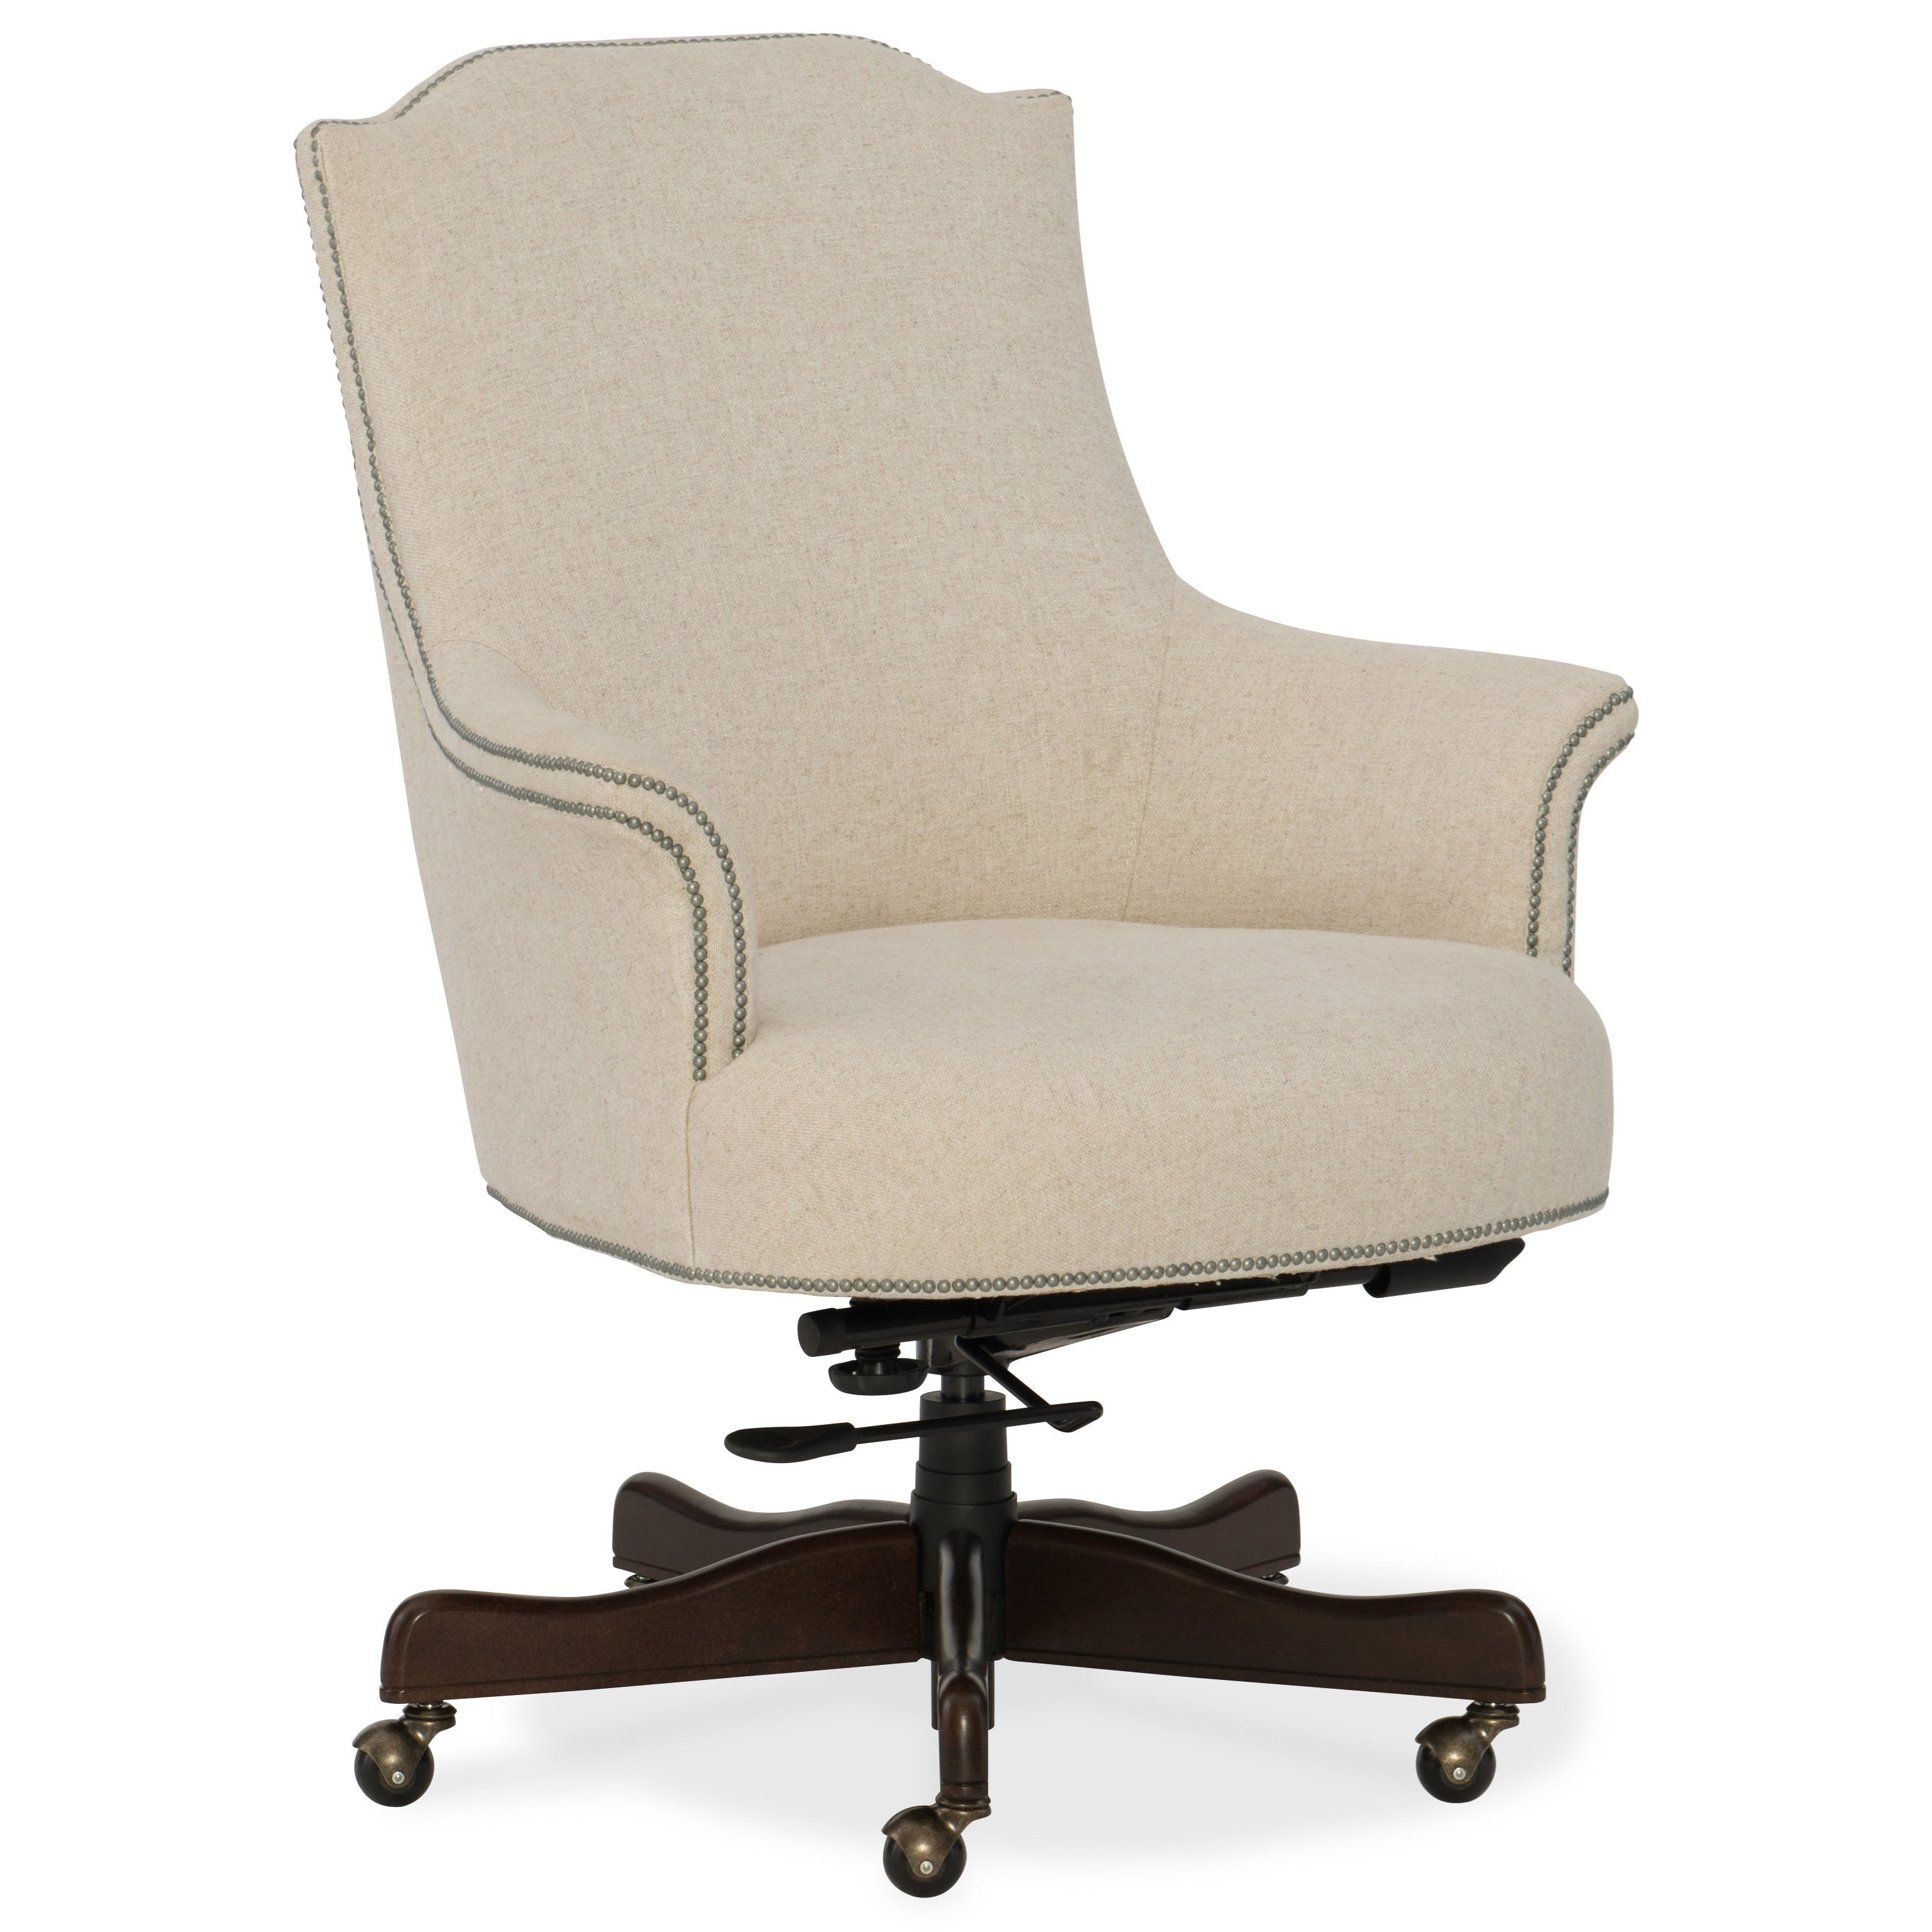 feminine executive office chairs chiavari wedding pictures hooker furniture seating daisy home chair